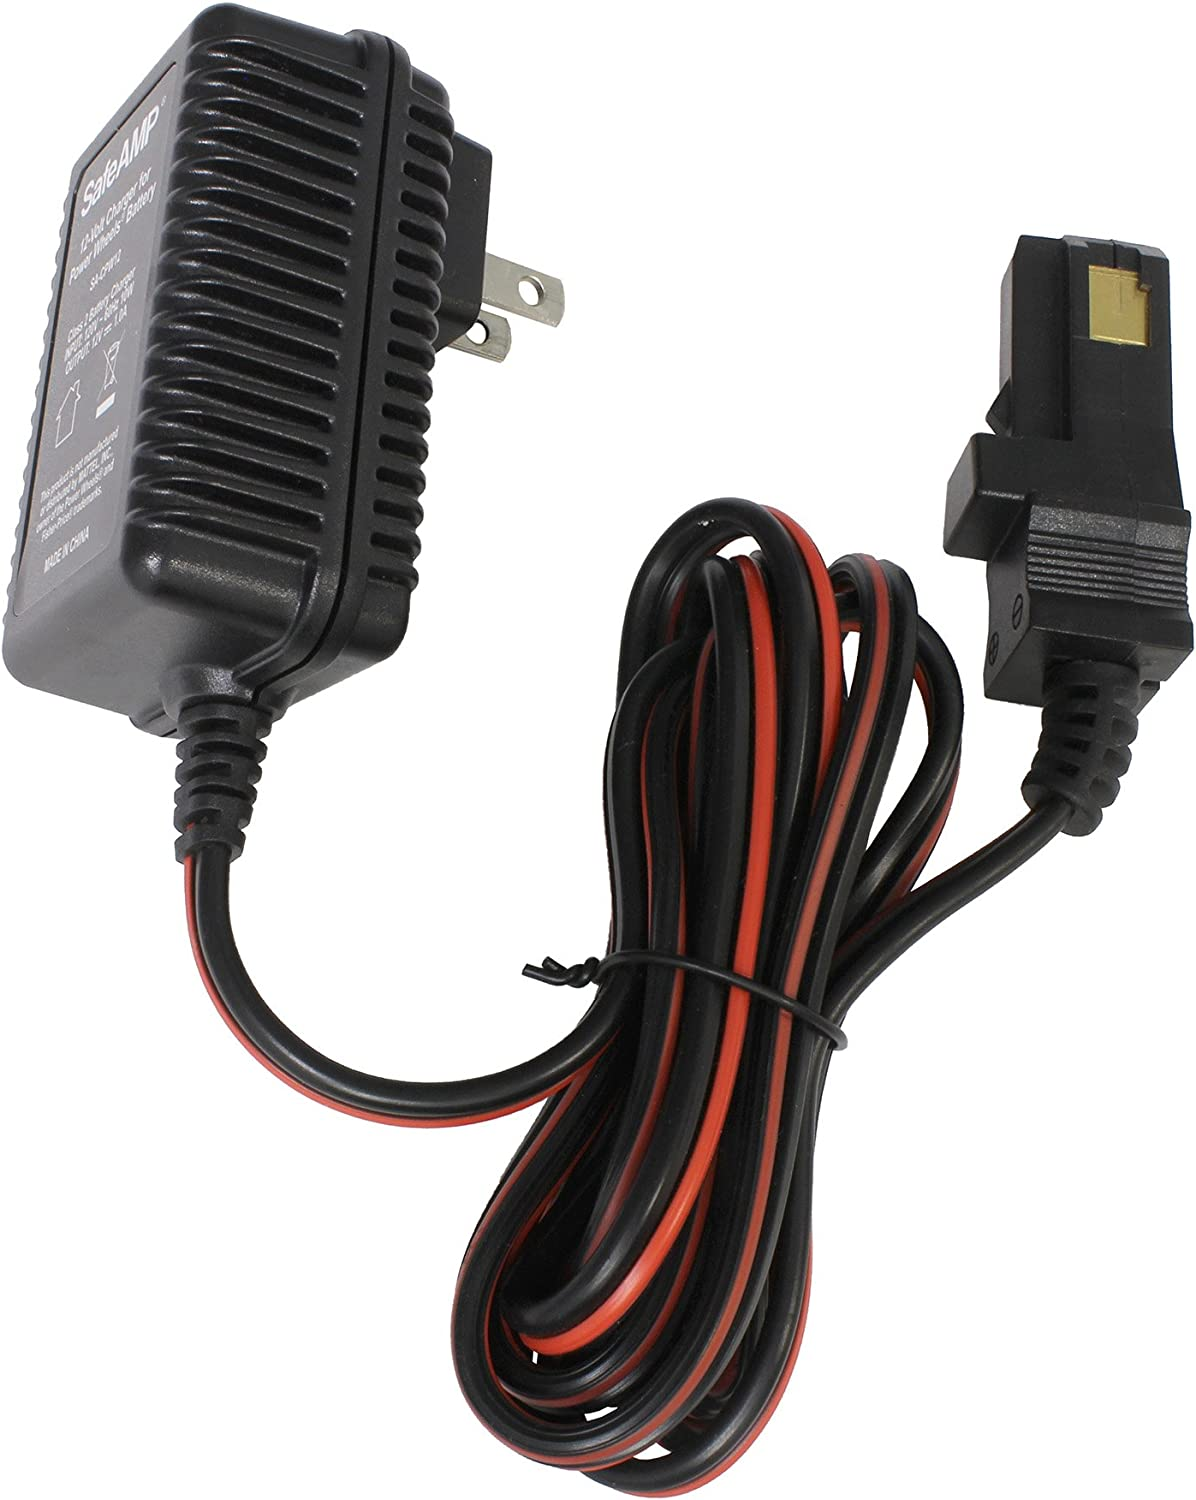 B076DJ1SRS SafeAMP 12-Volt Charger for Power Wheels Gray Battery and Orange Top Battery 71anGrsF-RL